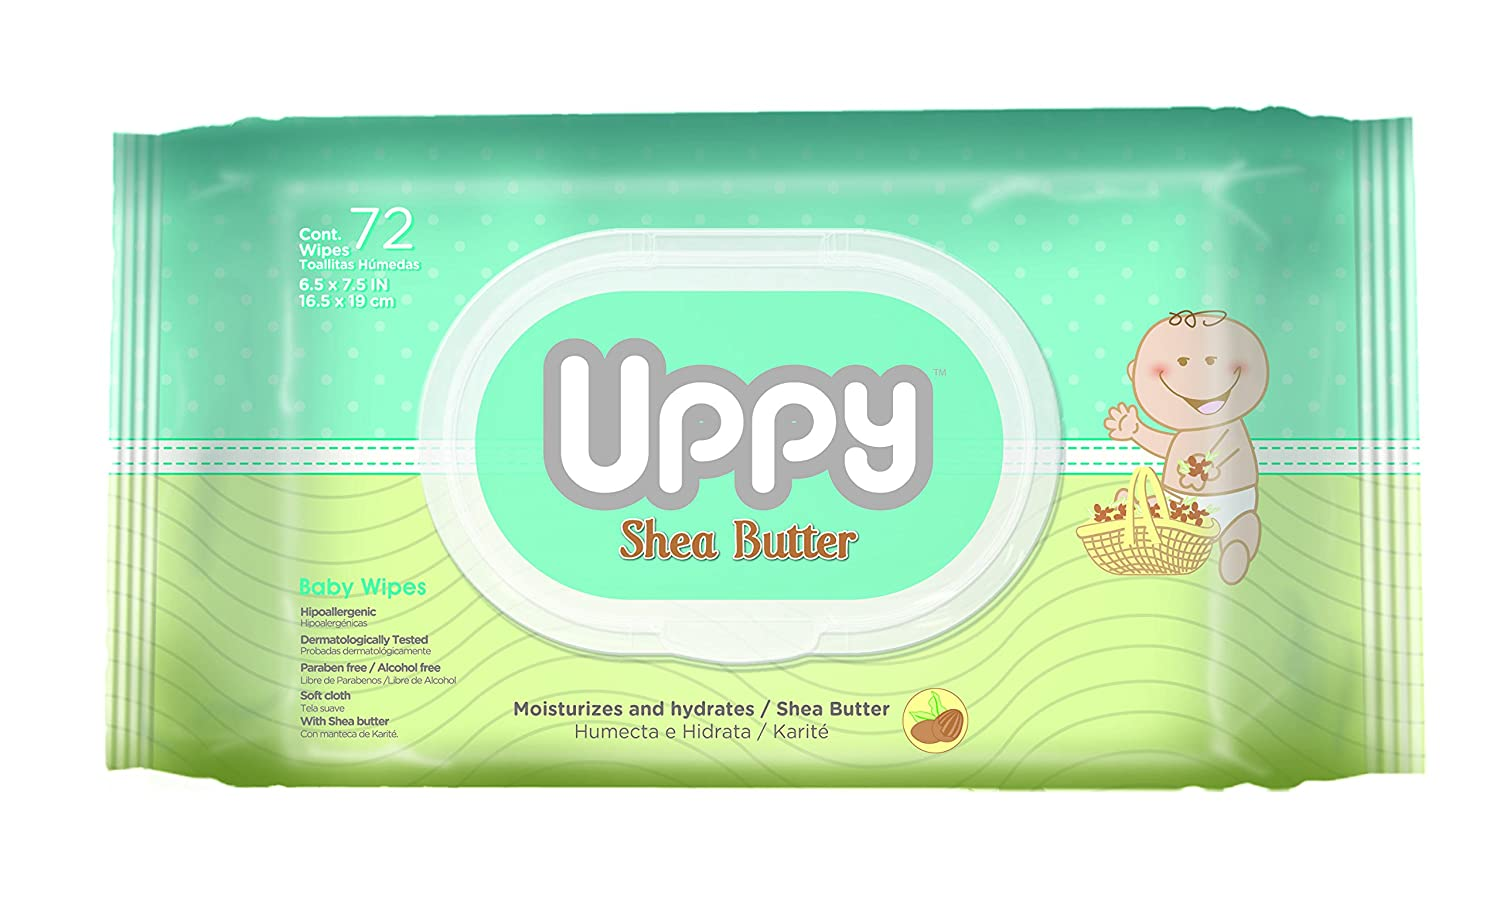 Amazon.com : UPPY Soft Cloth Hypoallergenic Baby Wipes, Shea Butter, 72 Count : Baby